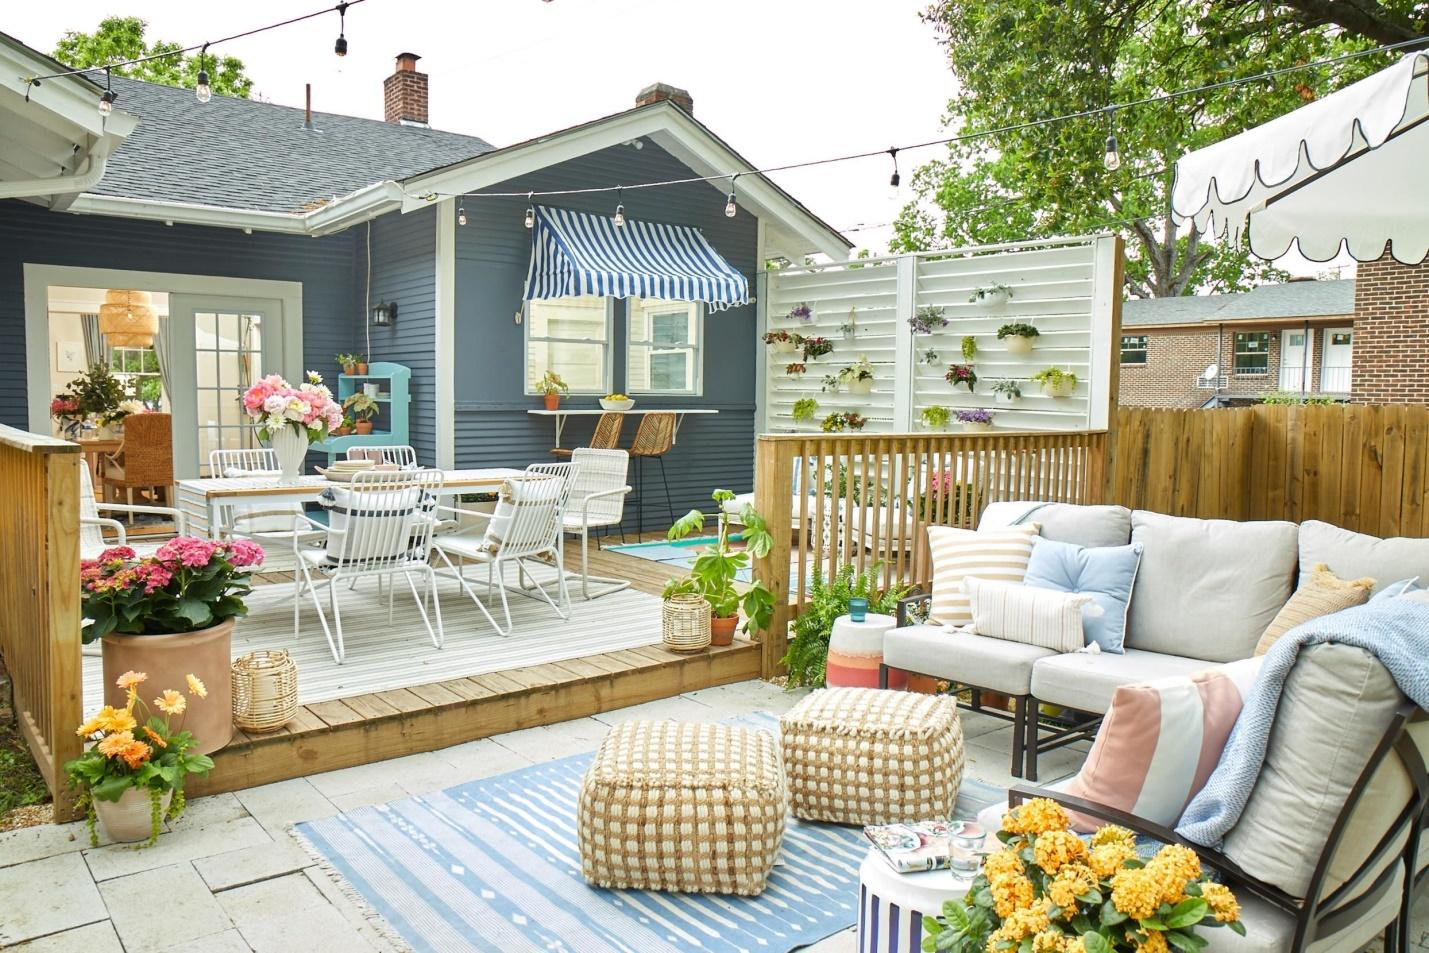 41 Best Patio and Porch Design Ideas - Decorating Your Outdoor Space